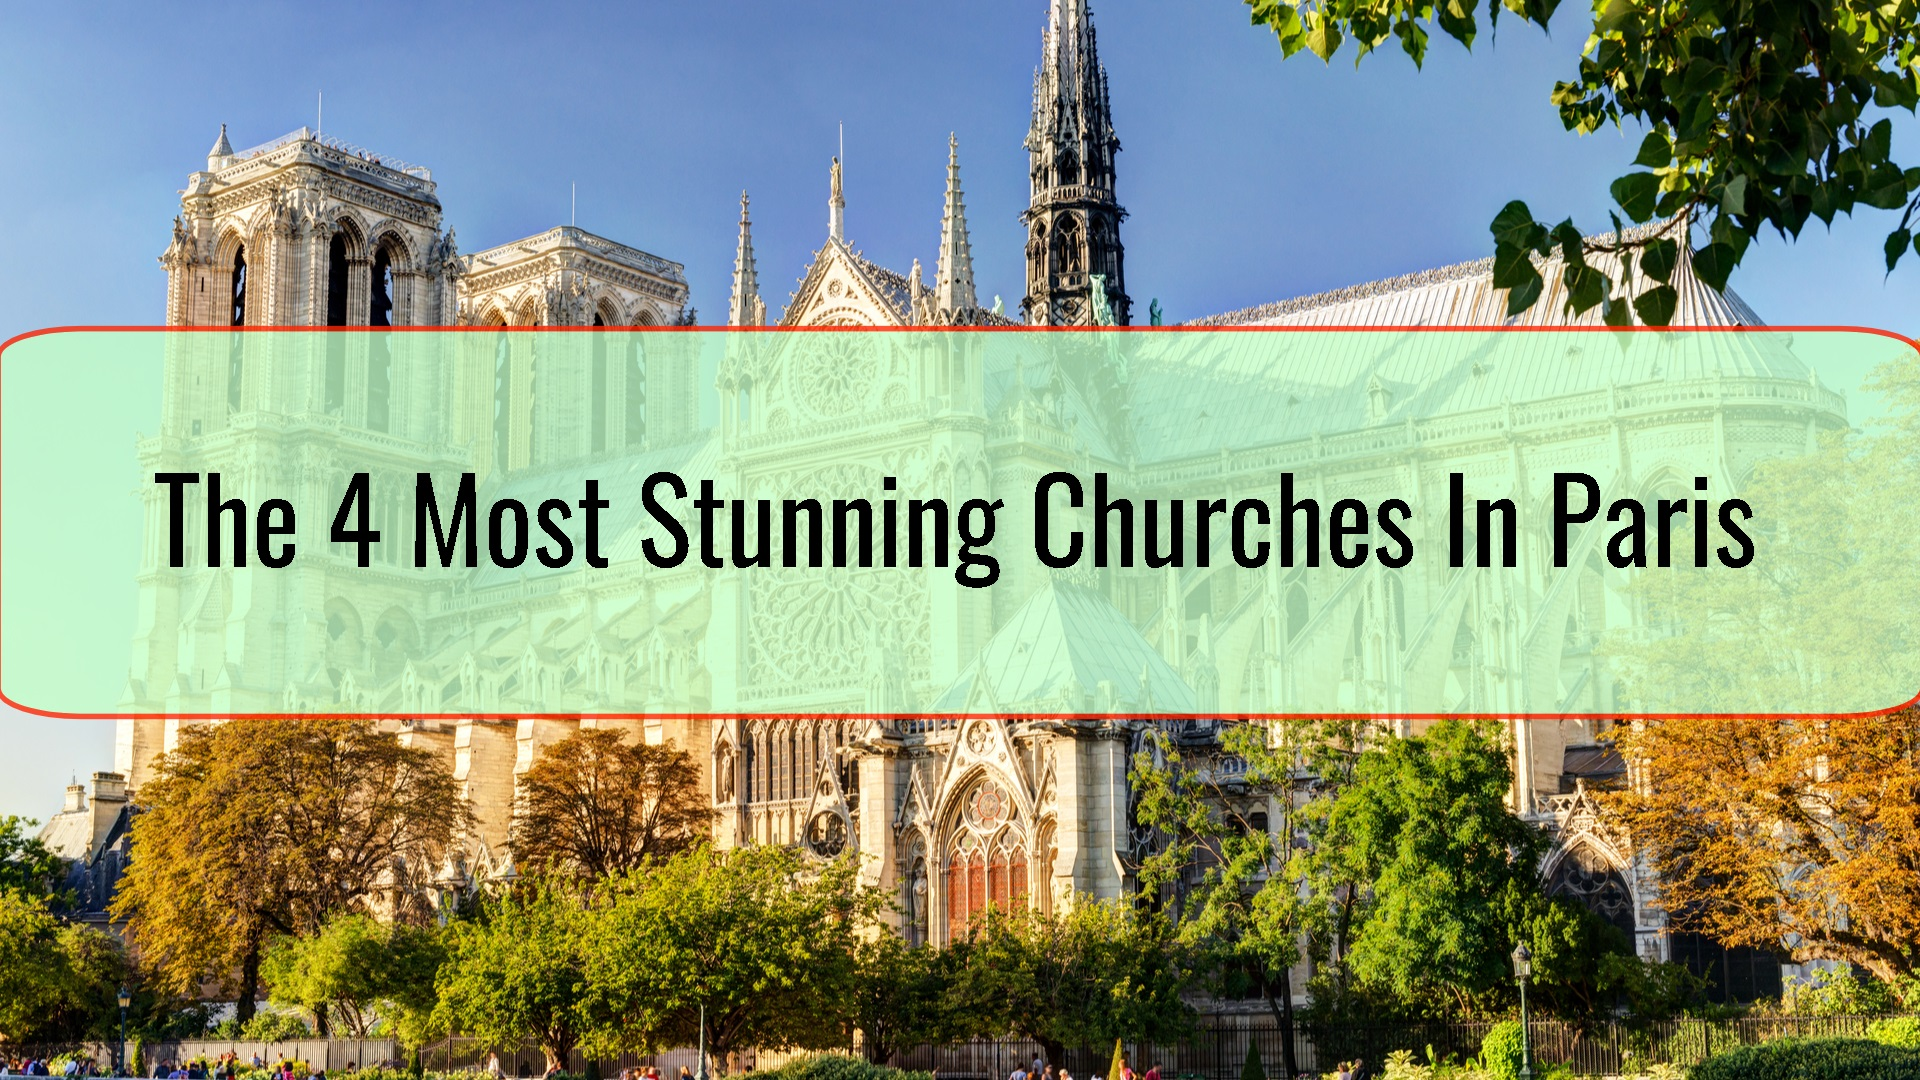 The 4 Most Stunning Churches In Paris